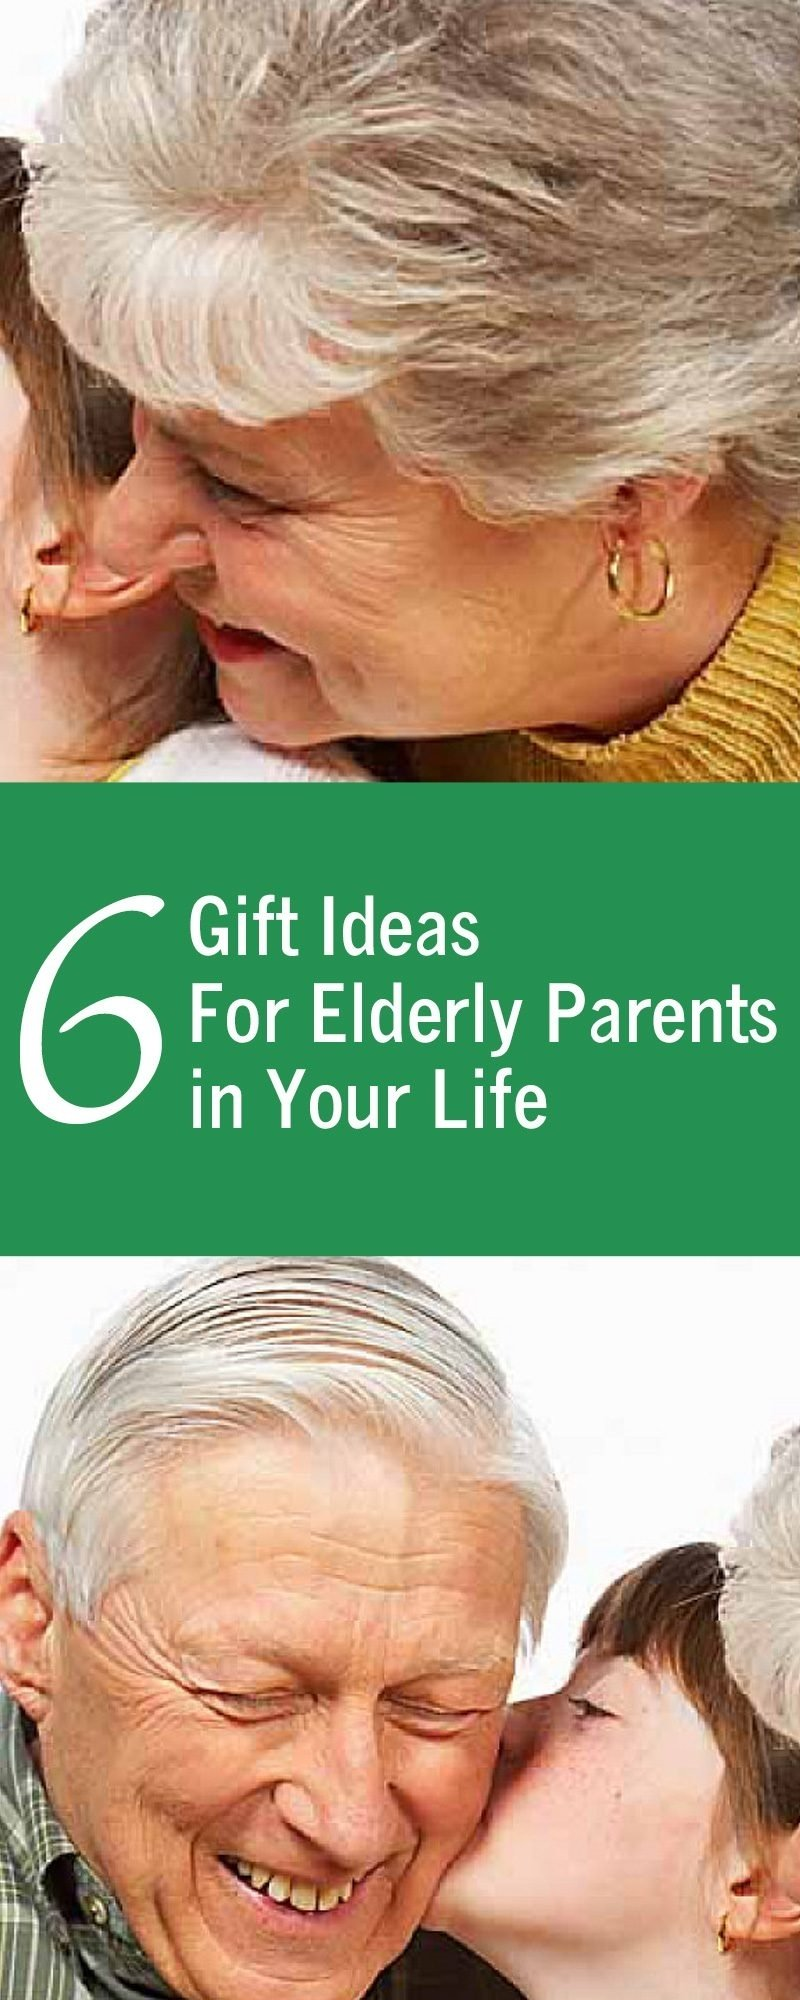 10 Amazing Gift Ideas For Elderly Parents the best gift ideas for elderly parents sabrinas organizing 2020